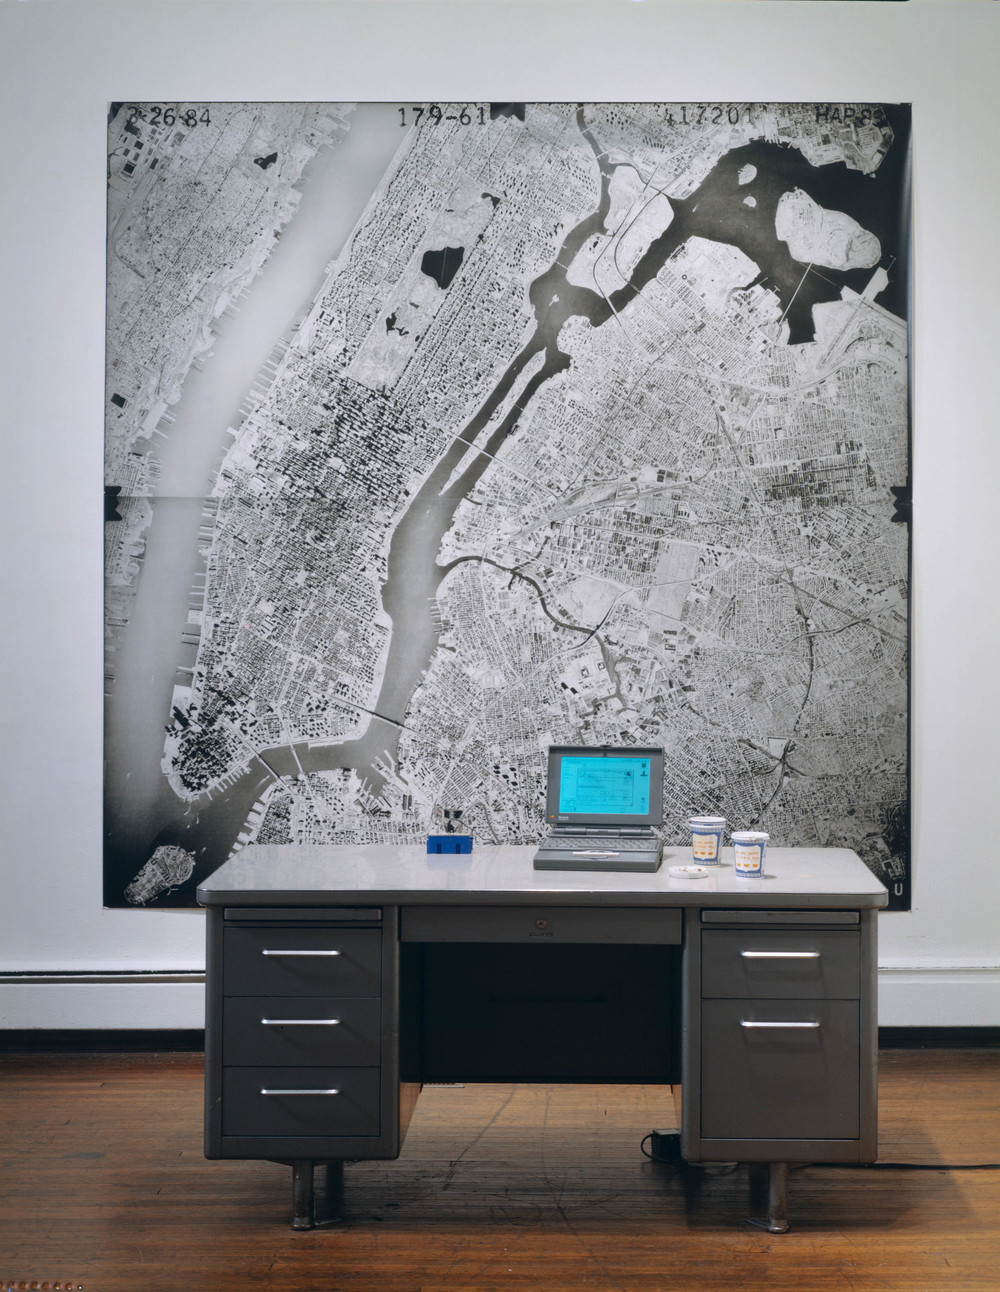 Where I'm At, 1993-1995, Black-and-white photograph, desk, computer with laser pointer, GPS unit, and cellular phone, 96 x 96 x 54 inches